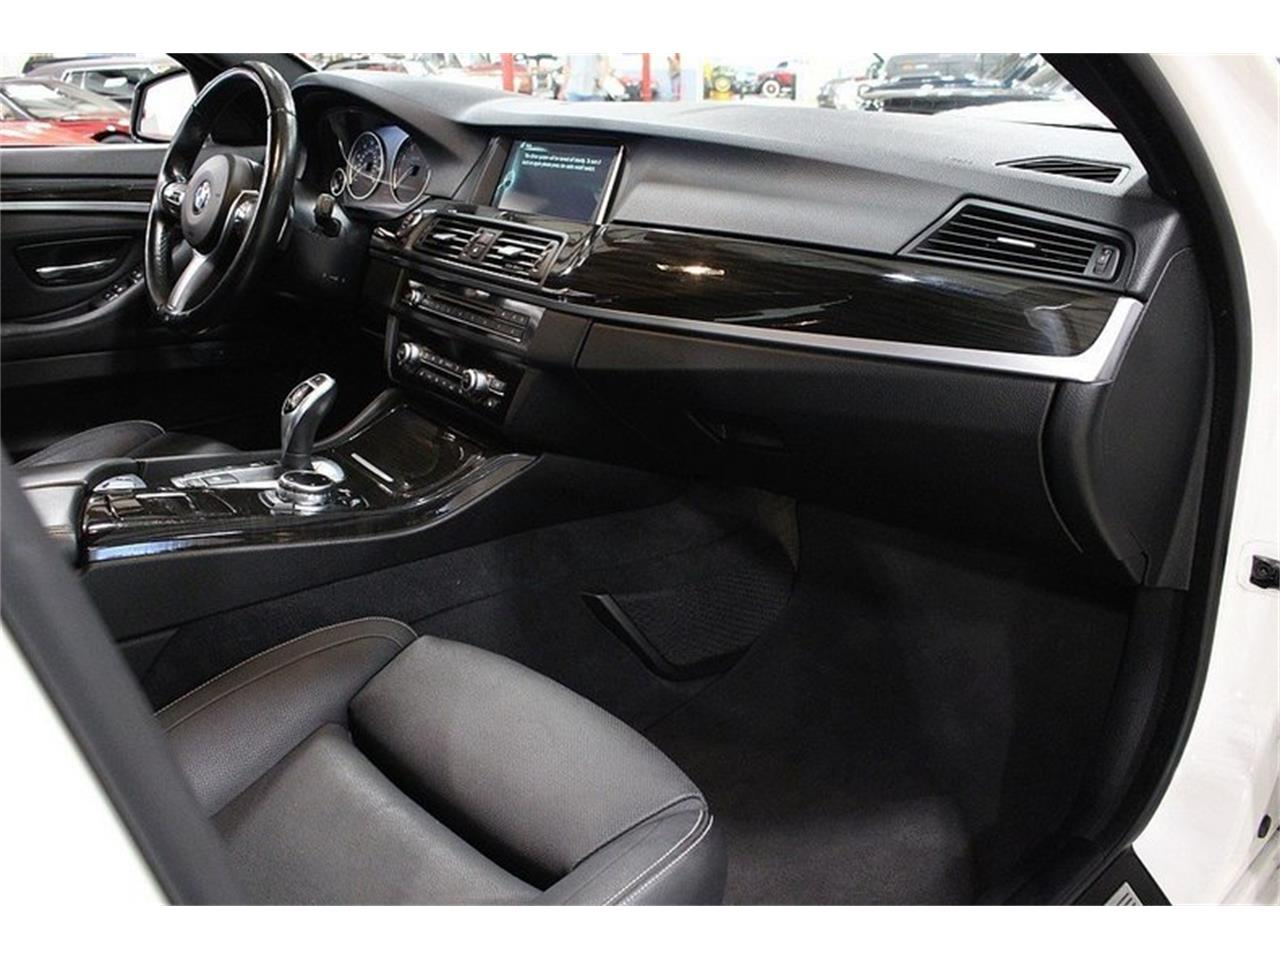 Large Picture of '14 BMW 5 Series - $34,900.00 - M41M